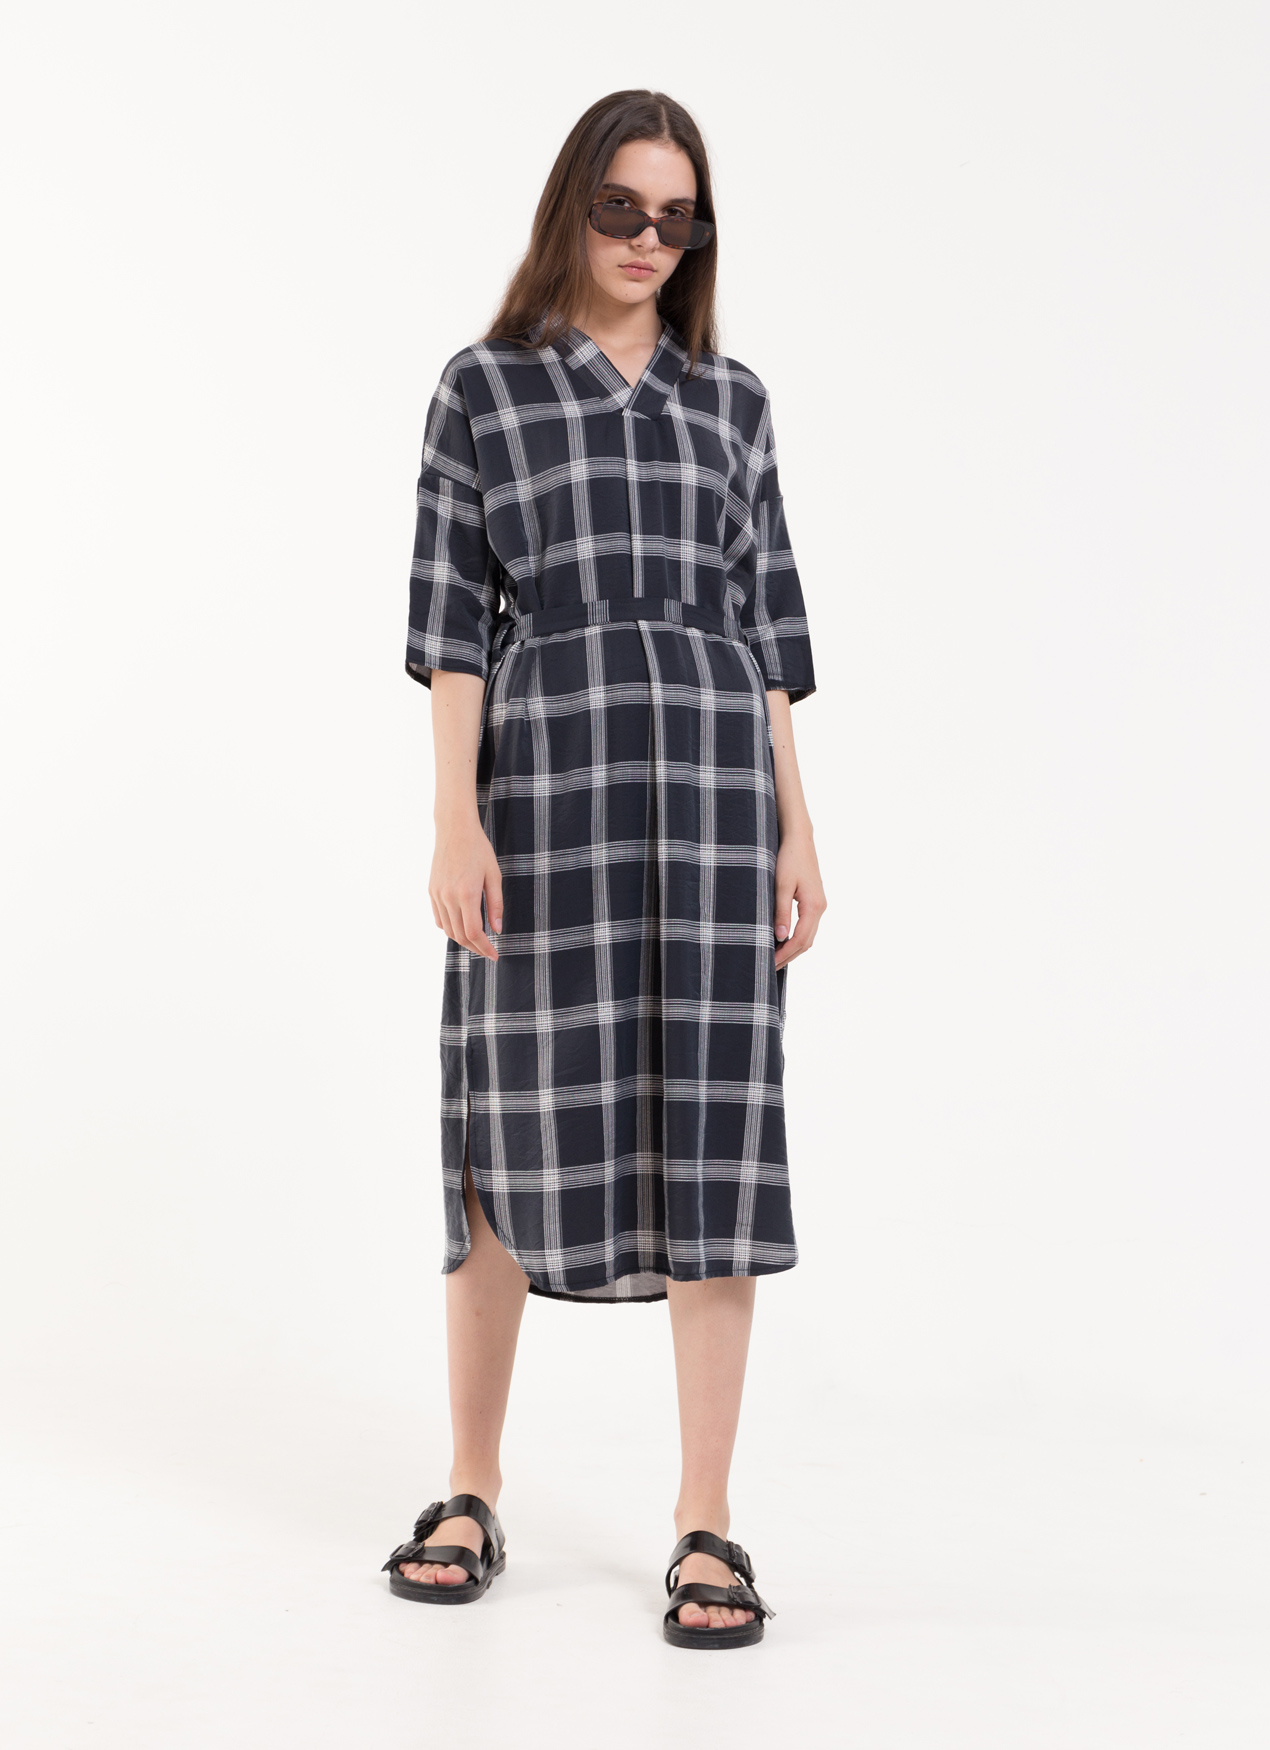 BOWN Lenna Dress - Black